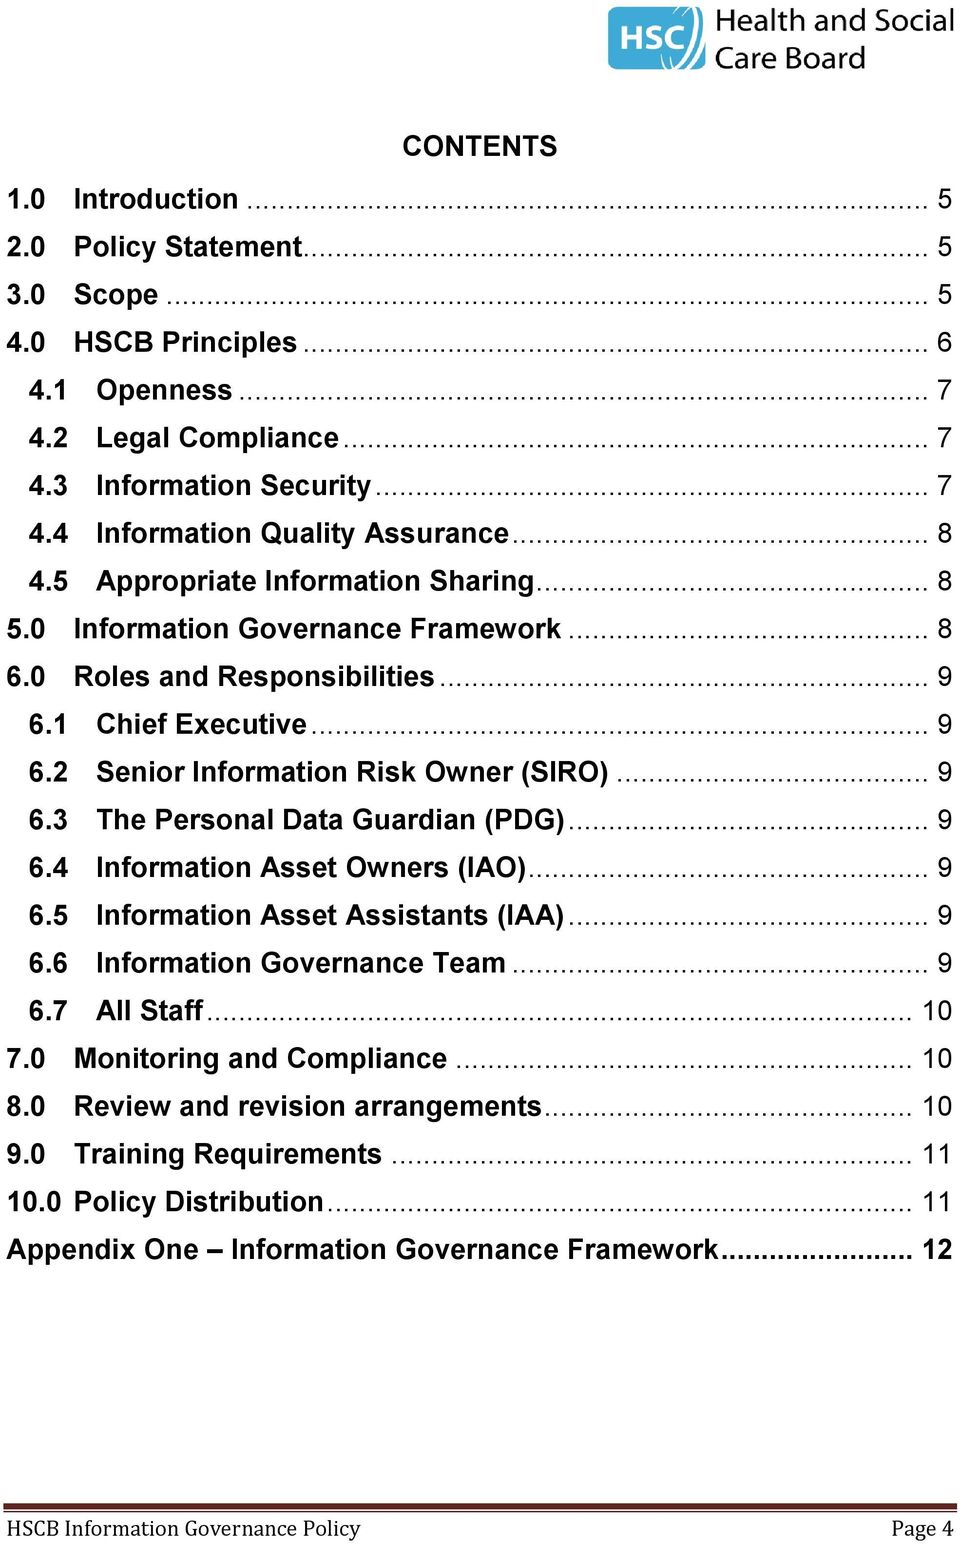 .. 9 6.4 Information Asset Owners (IAO)... 9 6.5 Information Asset Assistants (IAA)... 9 6.6 Information Governance Team... 9 6.7 All Staff... 10 7.0 Monitoring and Compliance... 10 8.